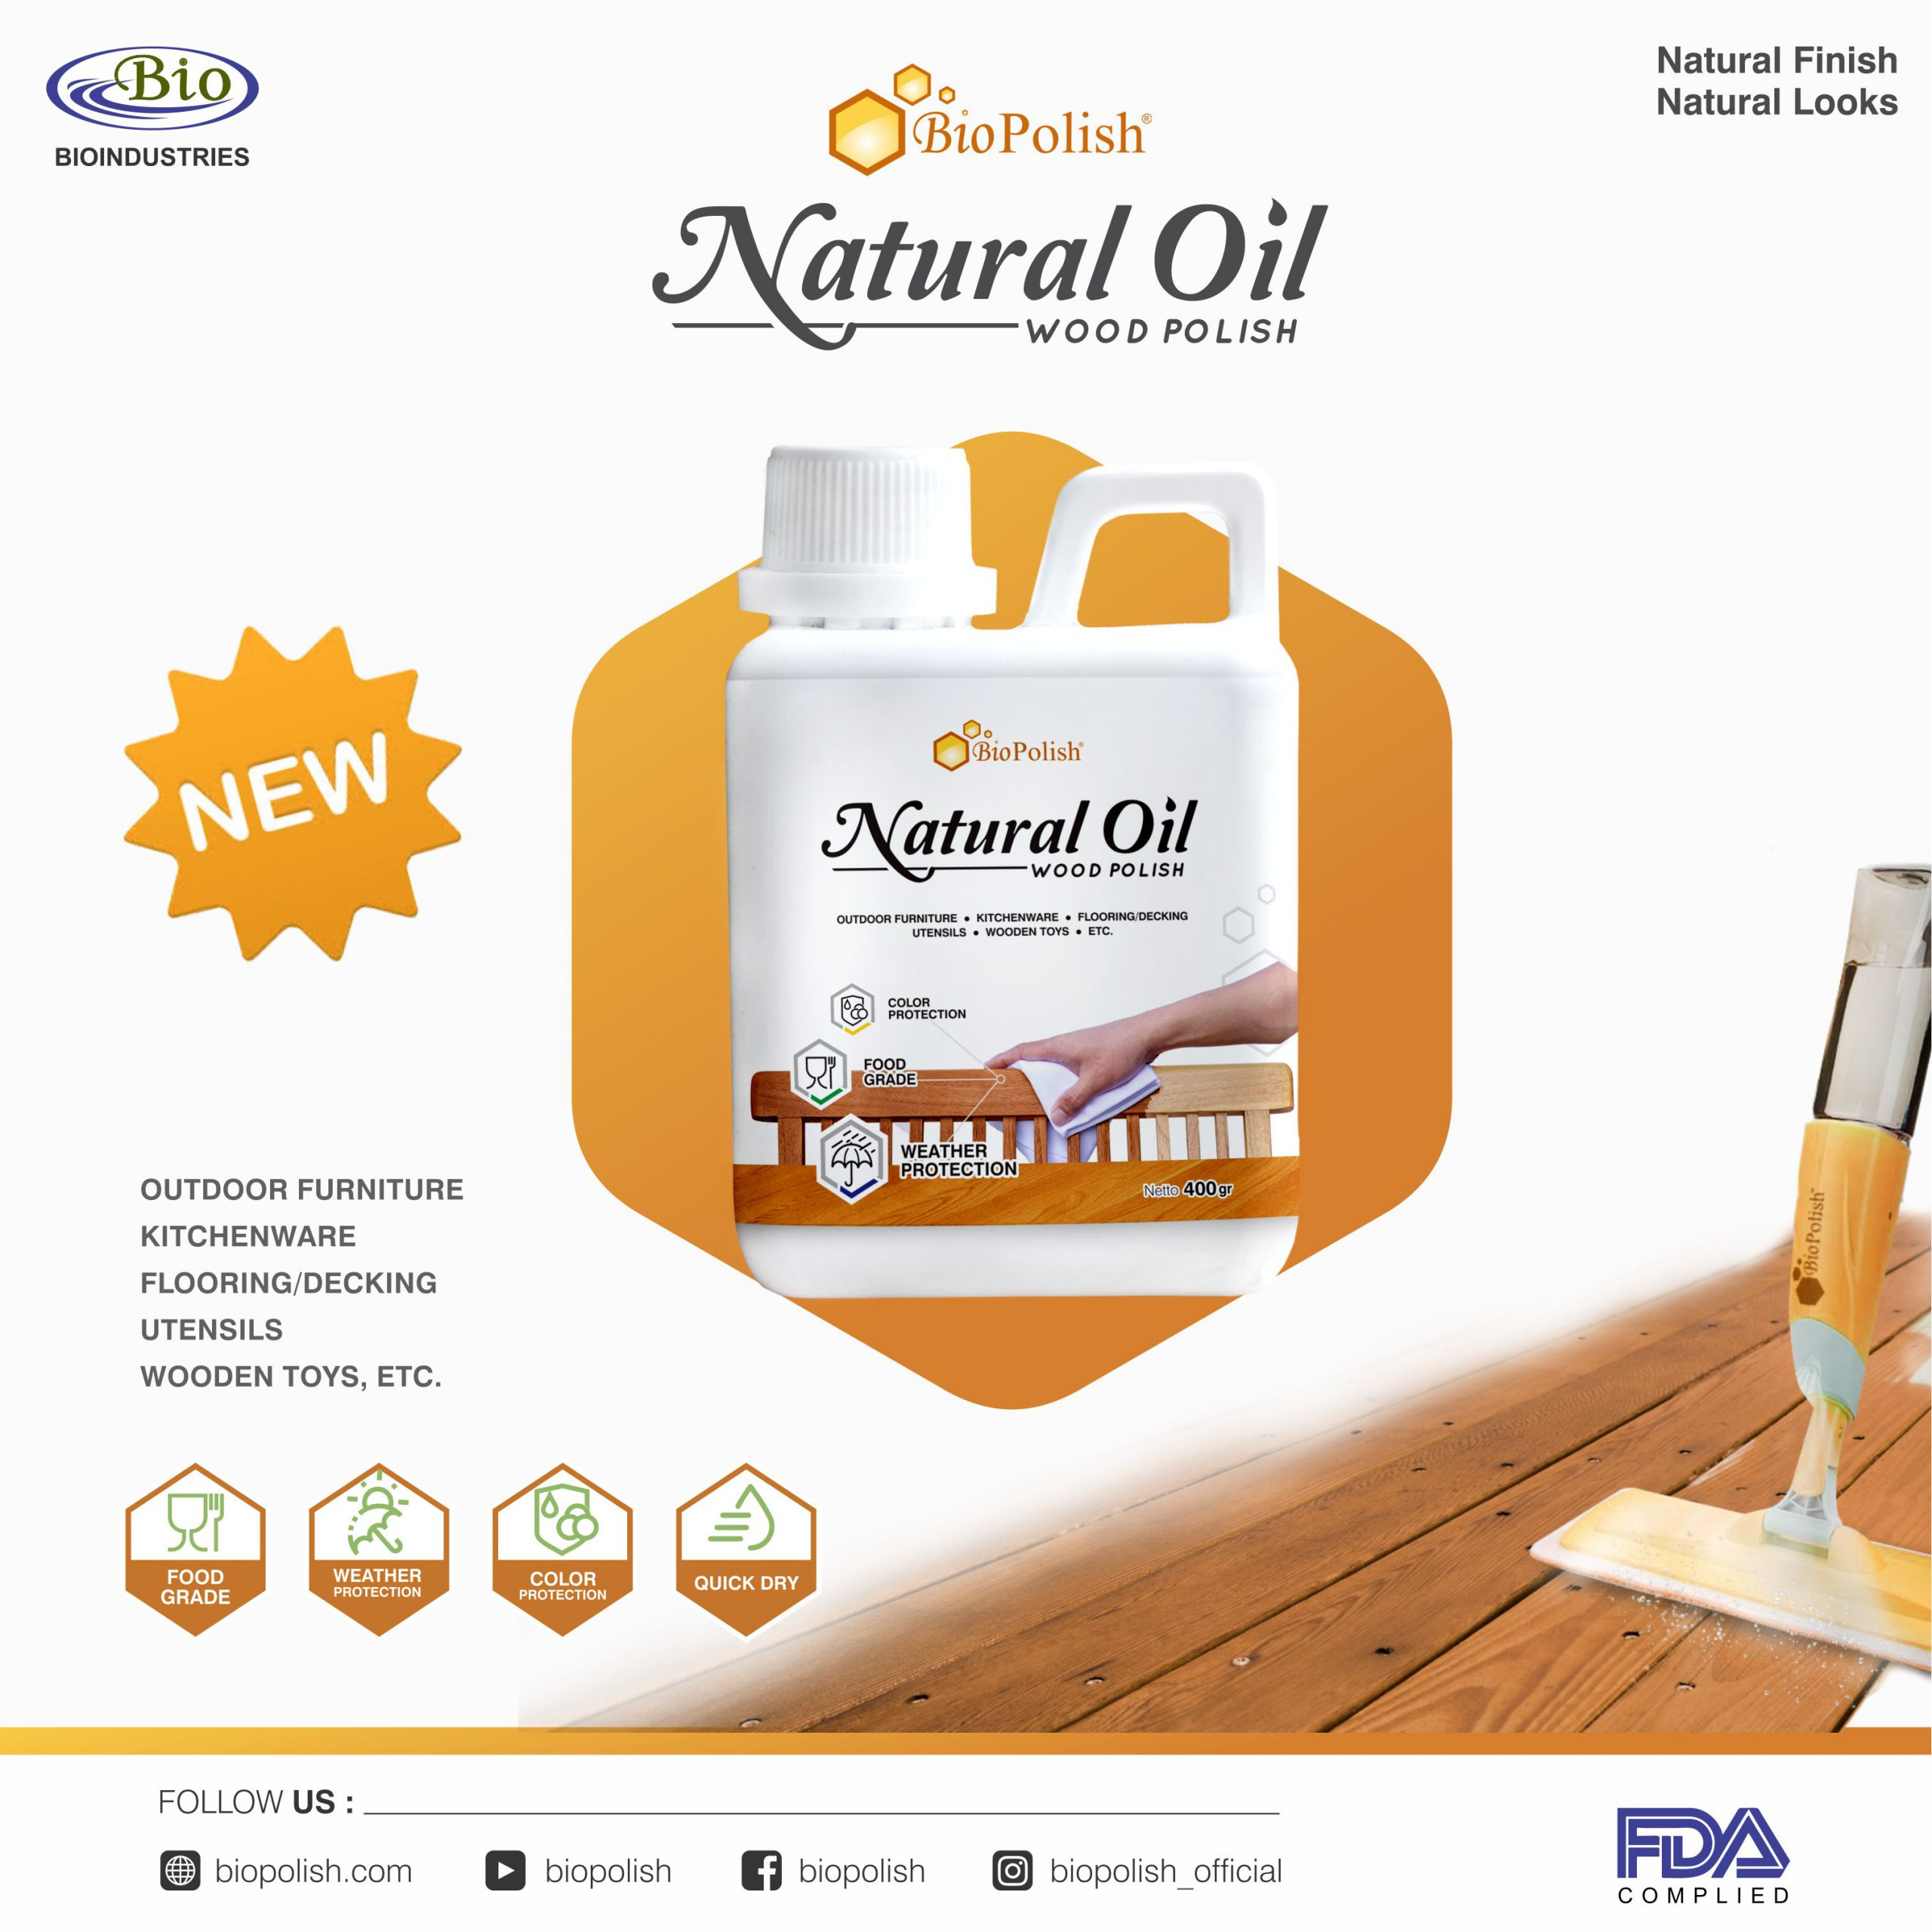 Biopolish Natural Oil